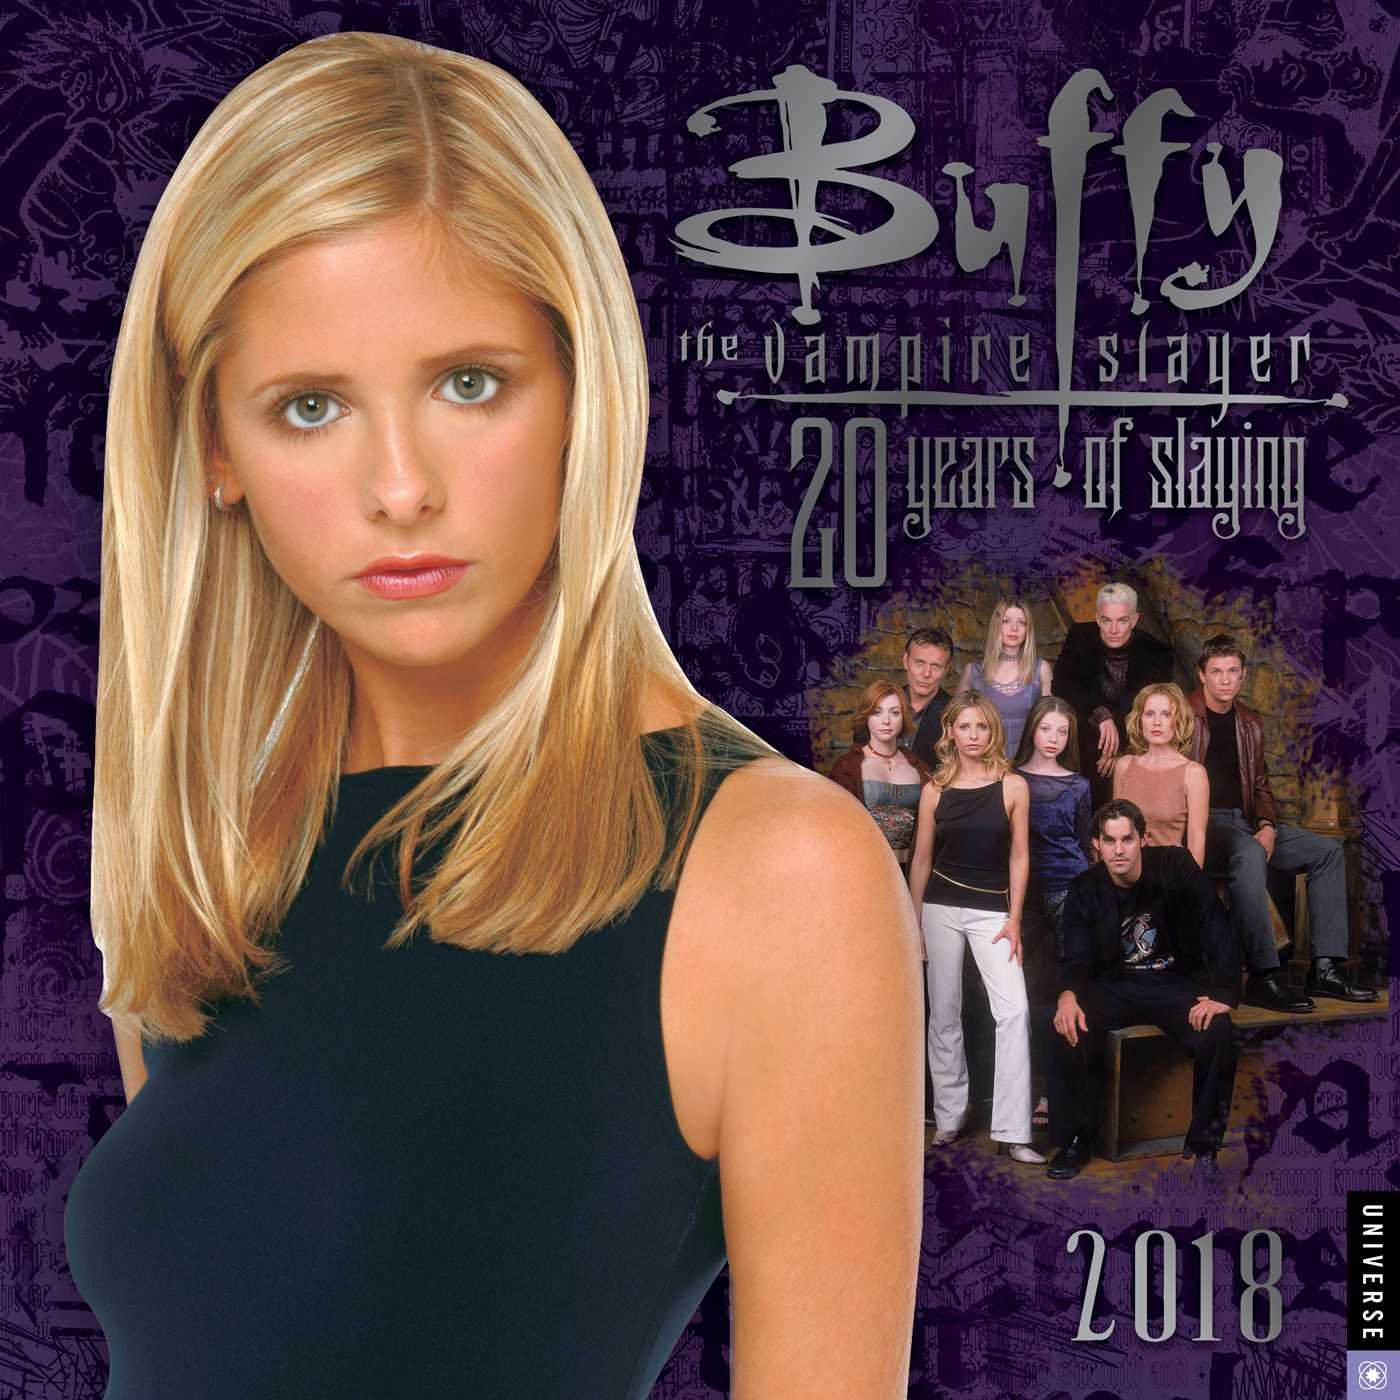 Buffy the Vampire Slayer 2018 Wall Calendar: 20 Years of Slaying by Universe Publishing